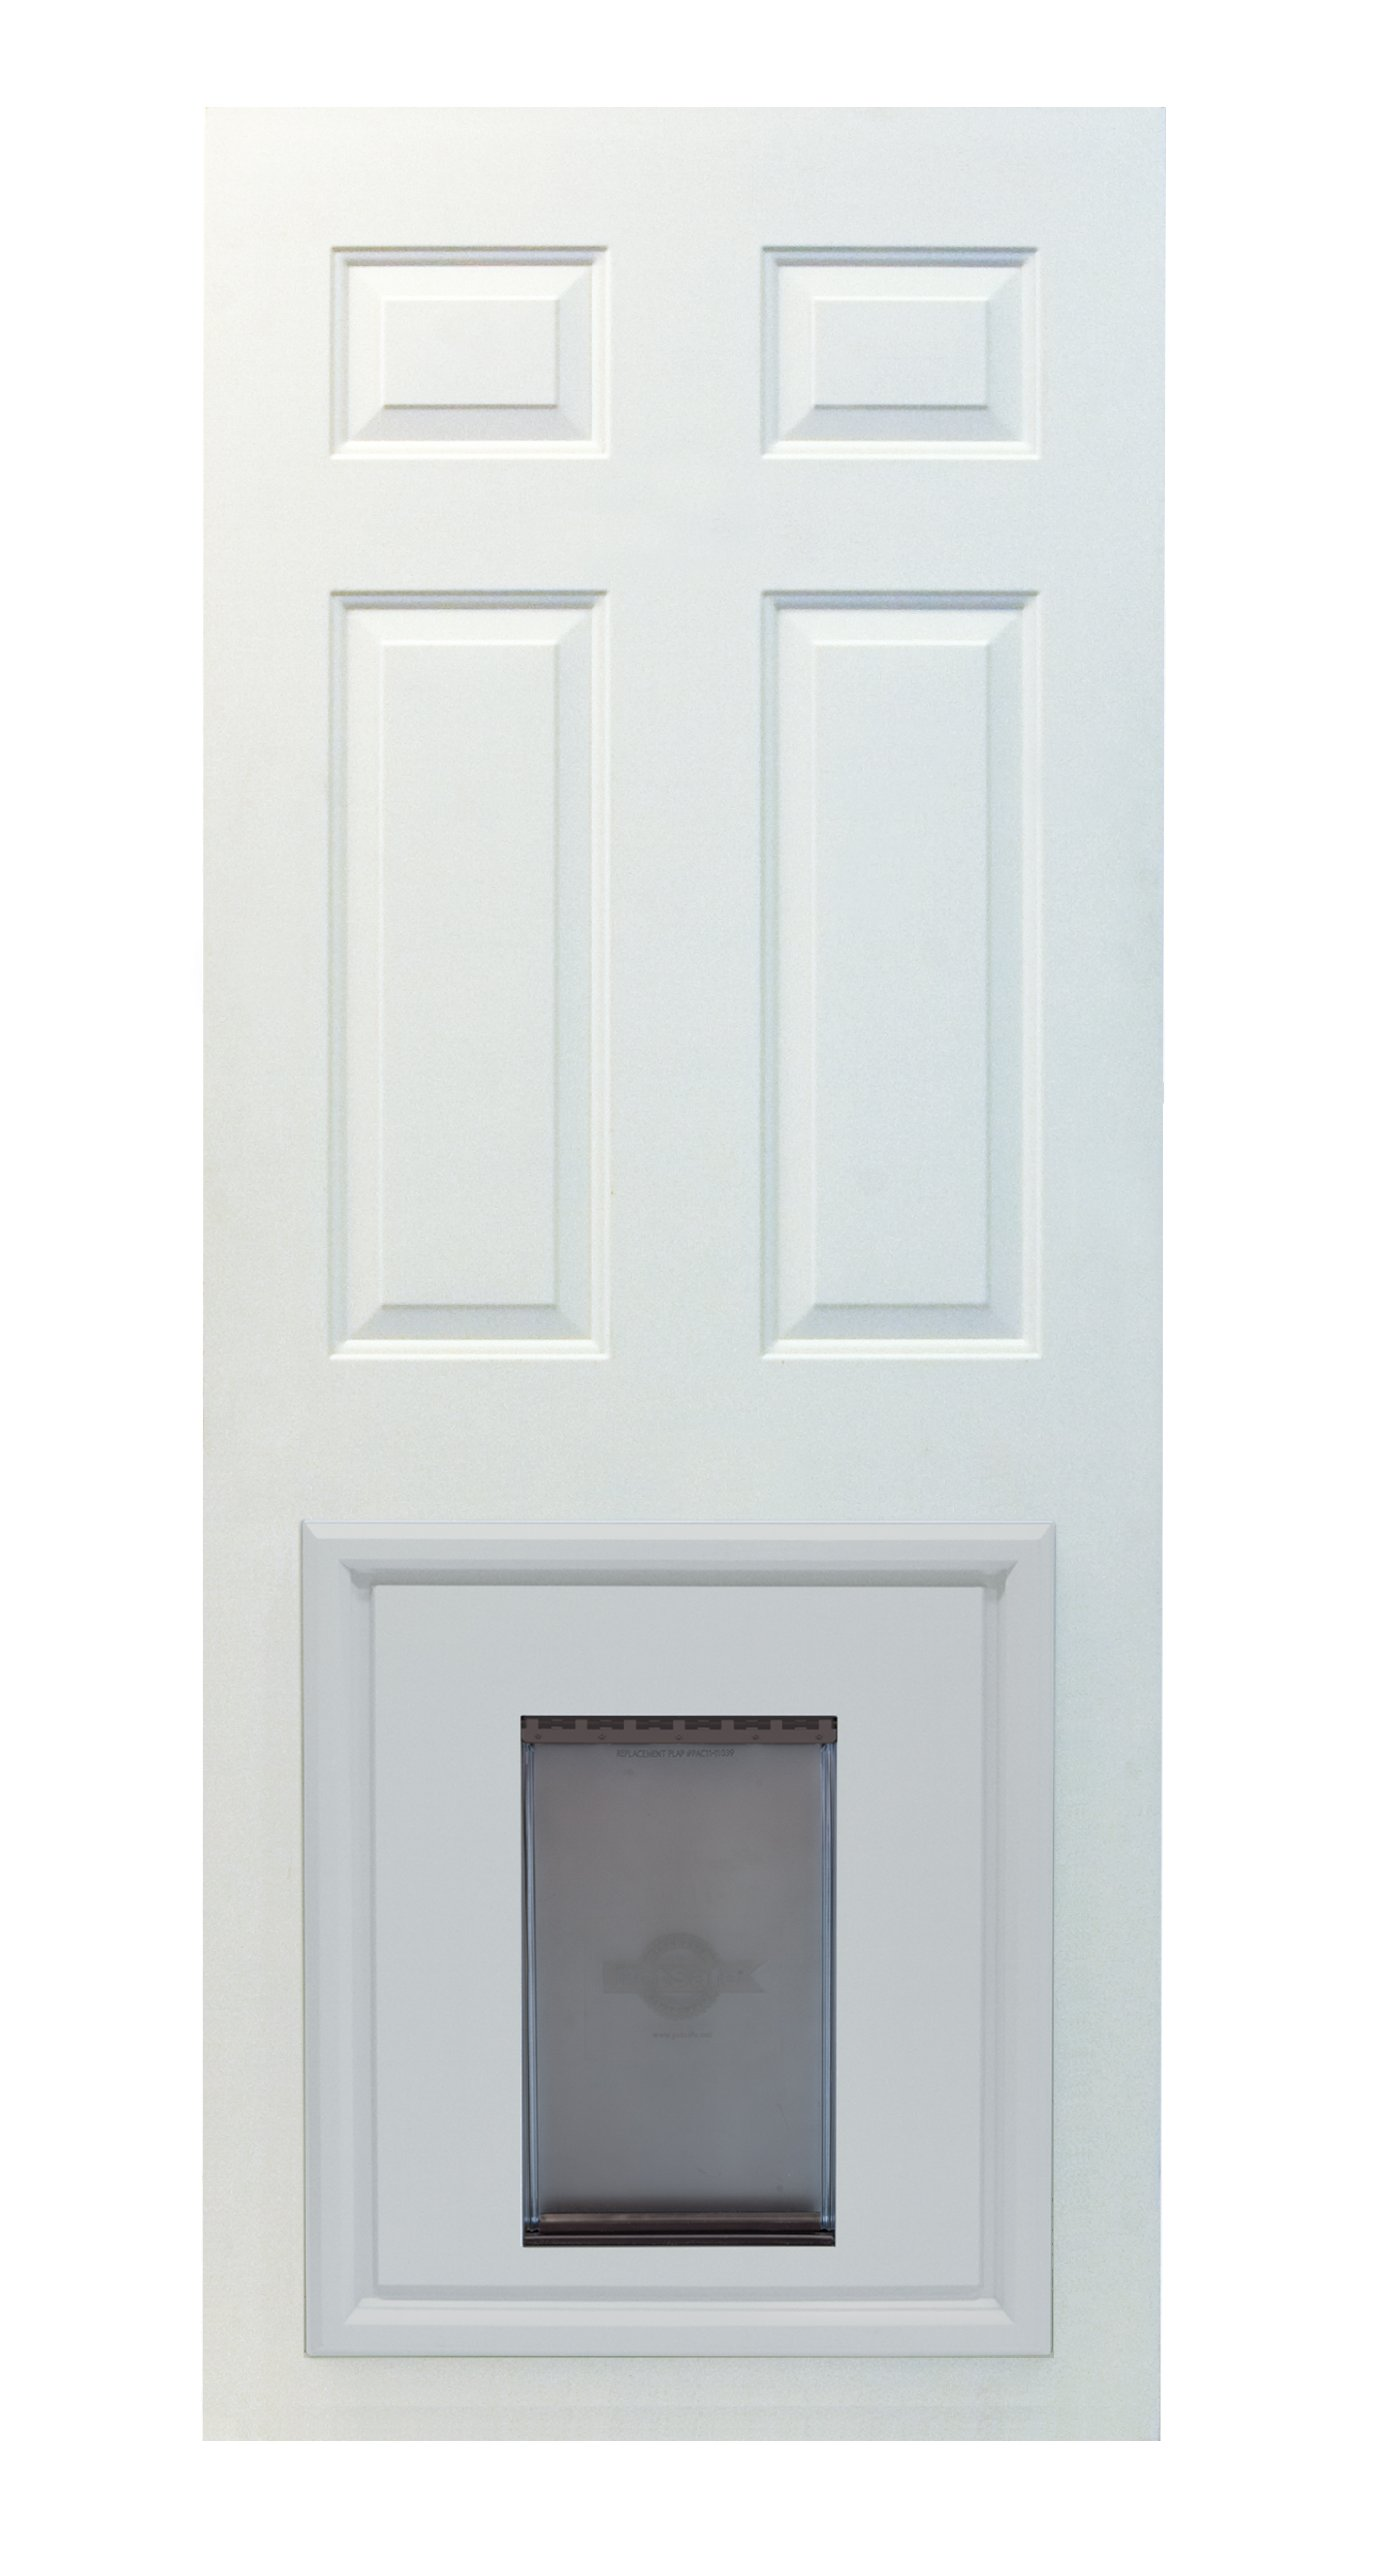 PetSafe Panel Pet Door, Paintable White, Large - Fits into Paneled Doors by PetSafe